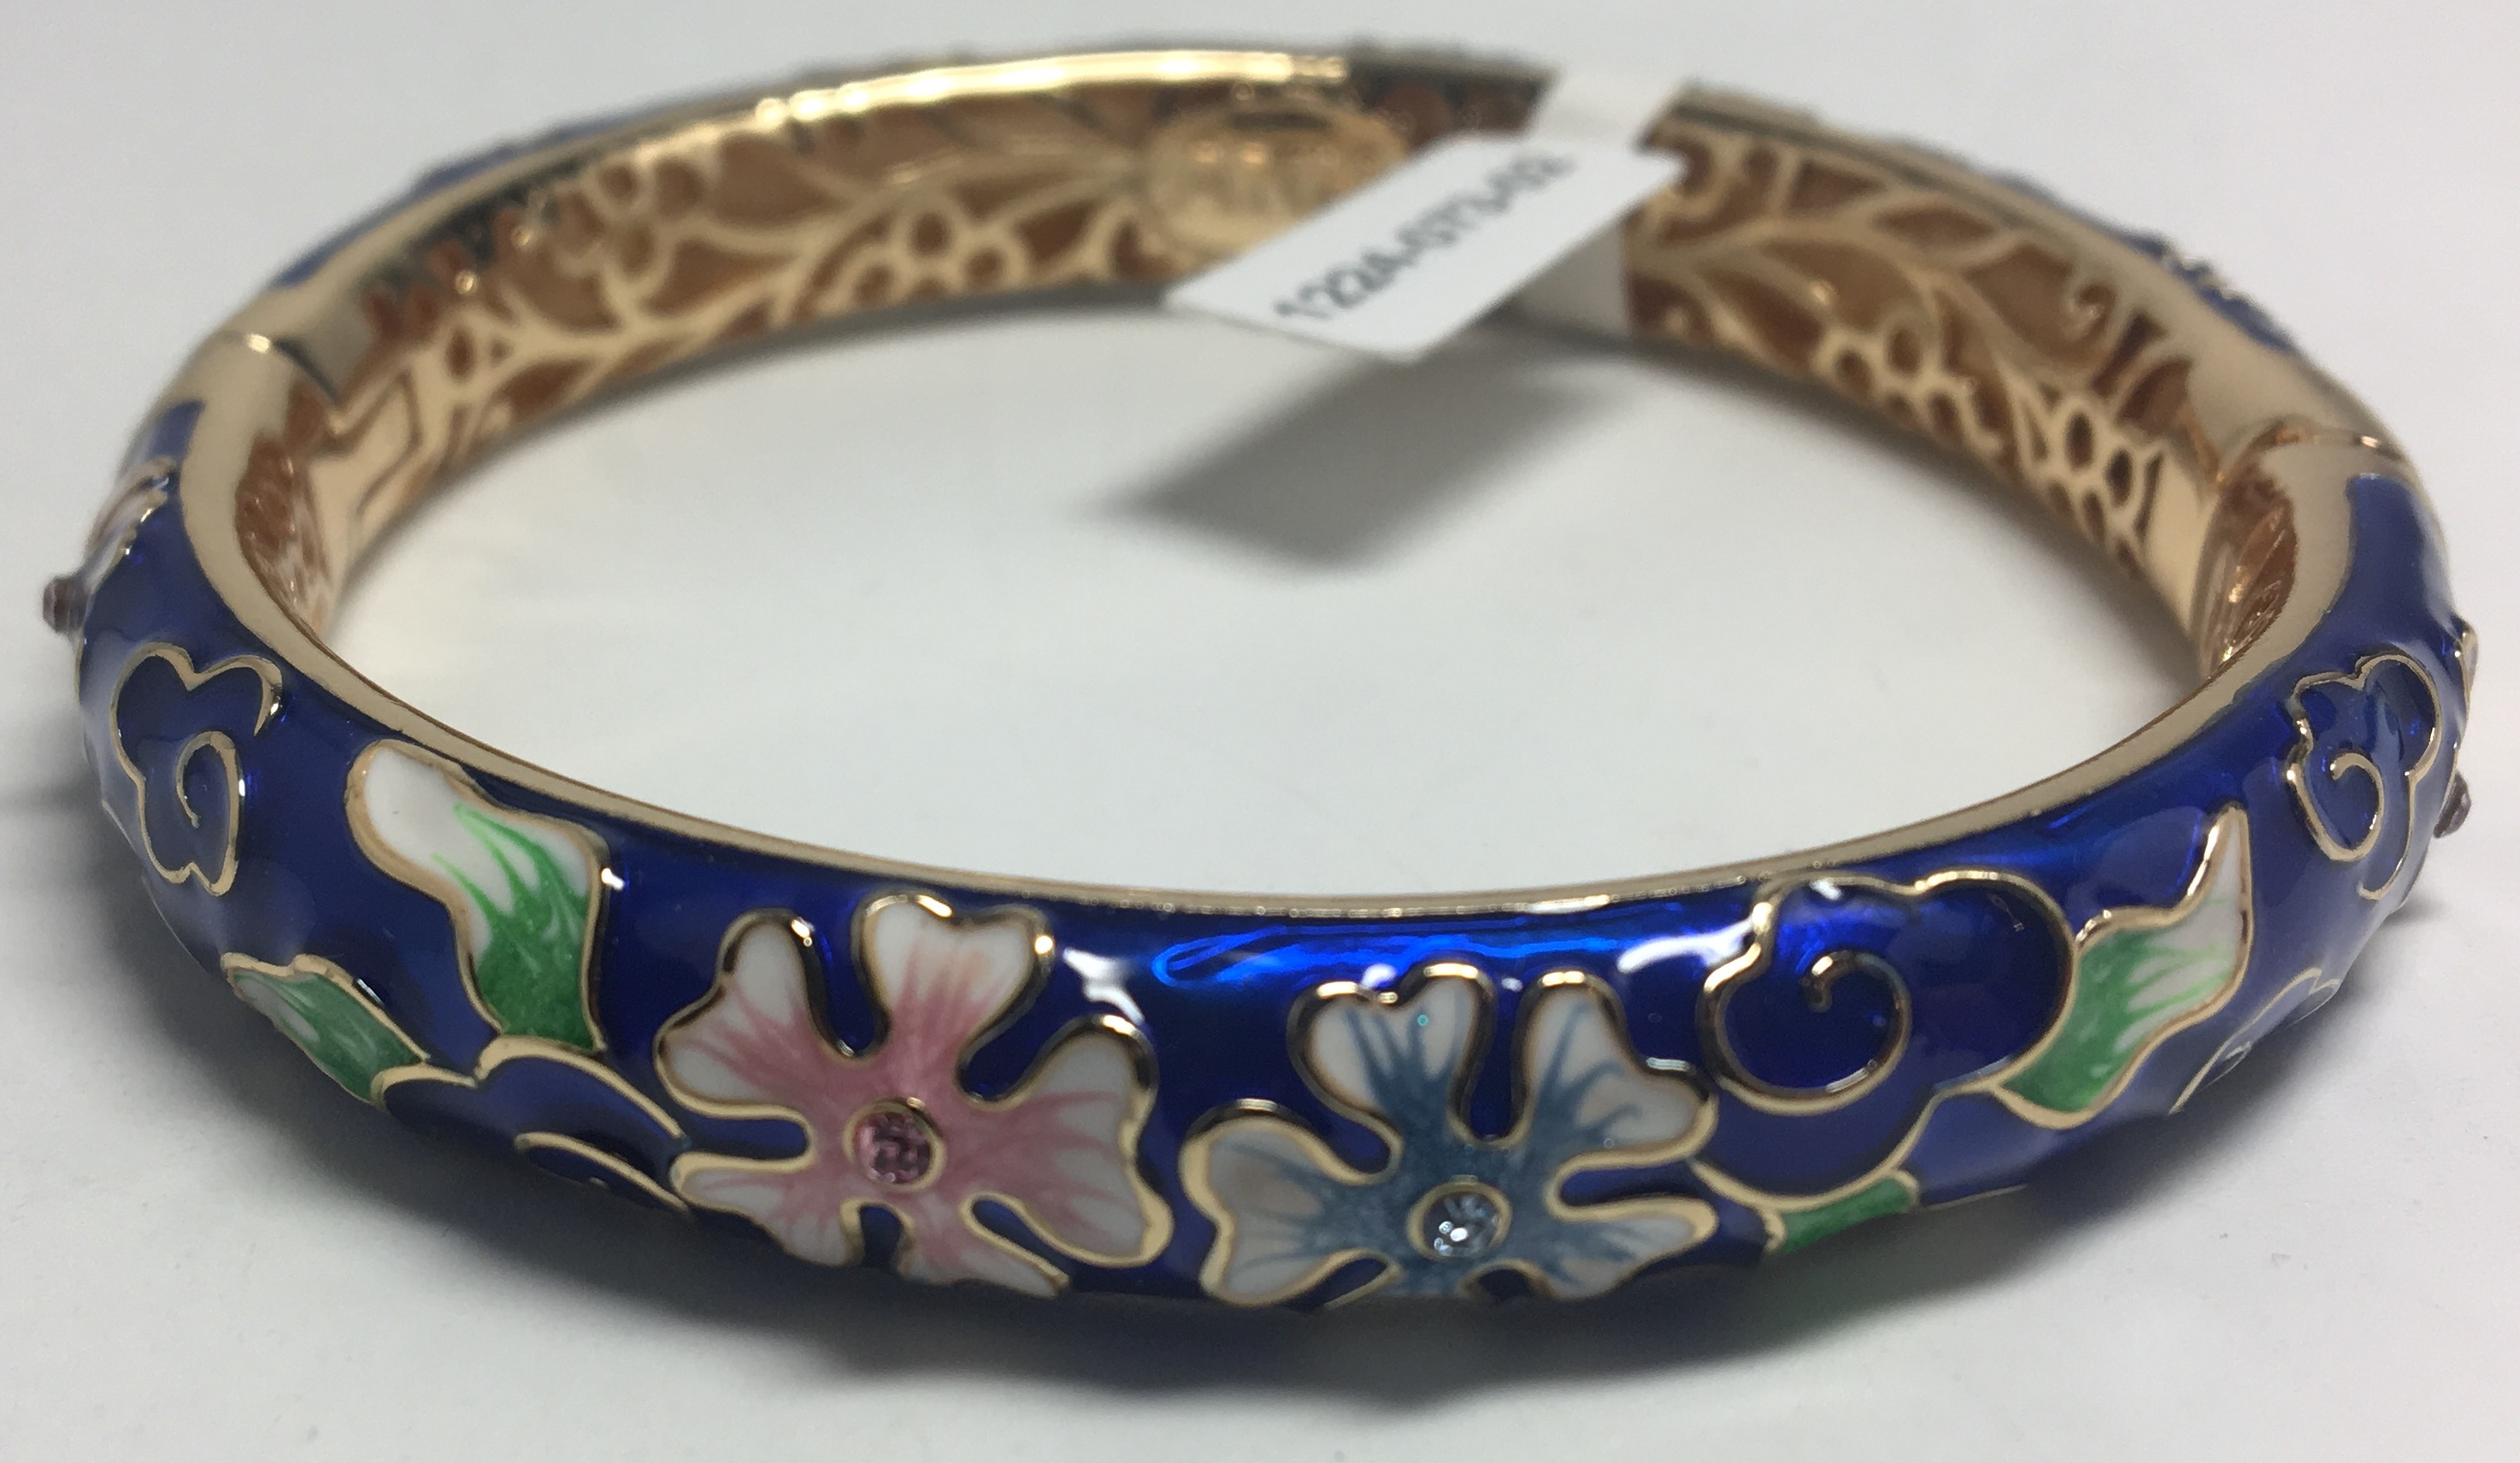 Quintuple Leaf Blue Bracelet with Enamel (by AKM Gifts)